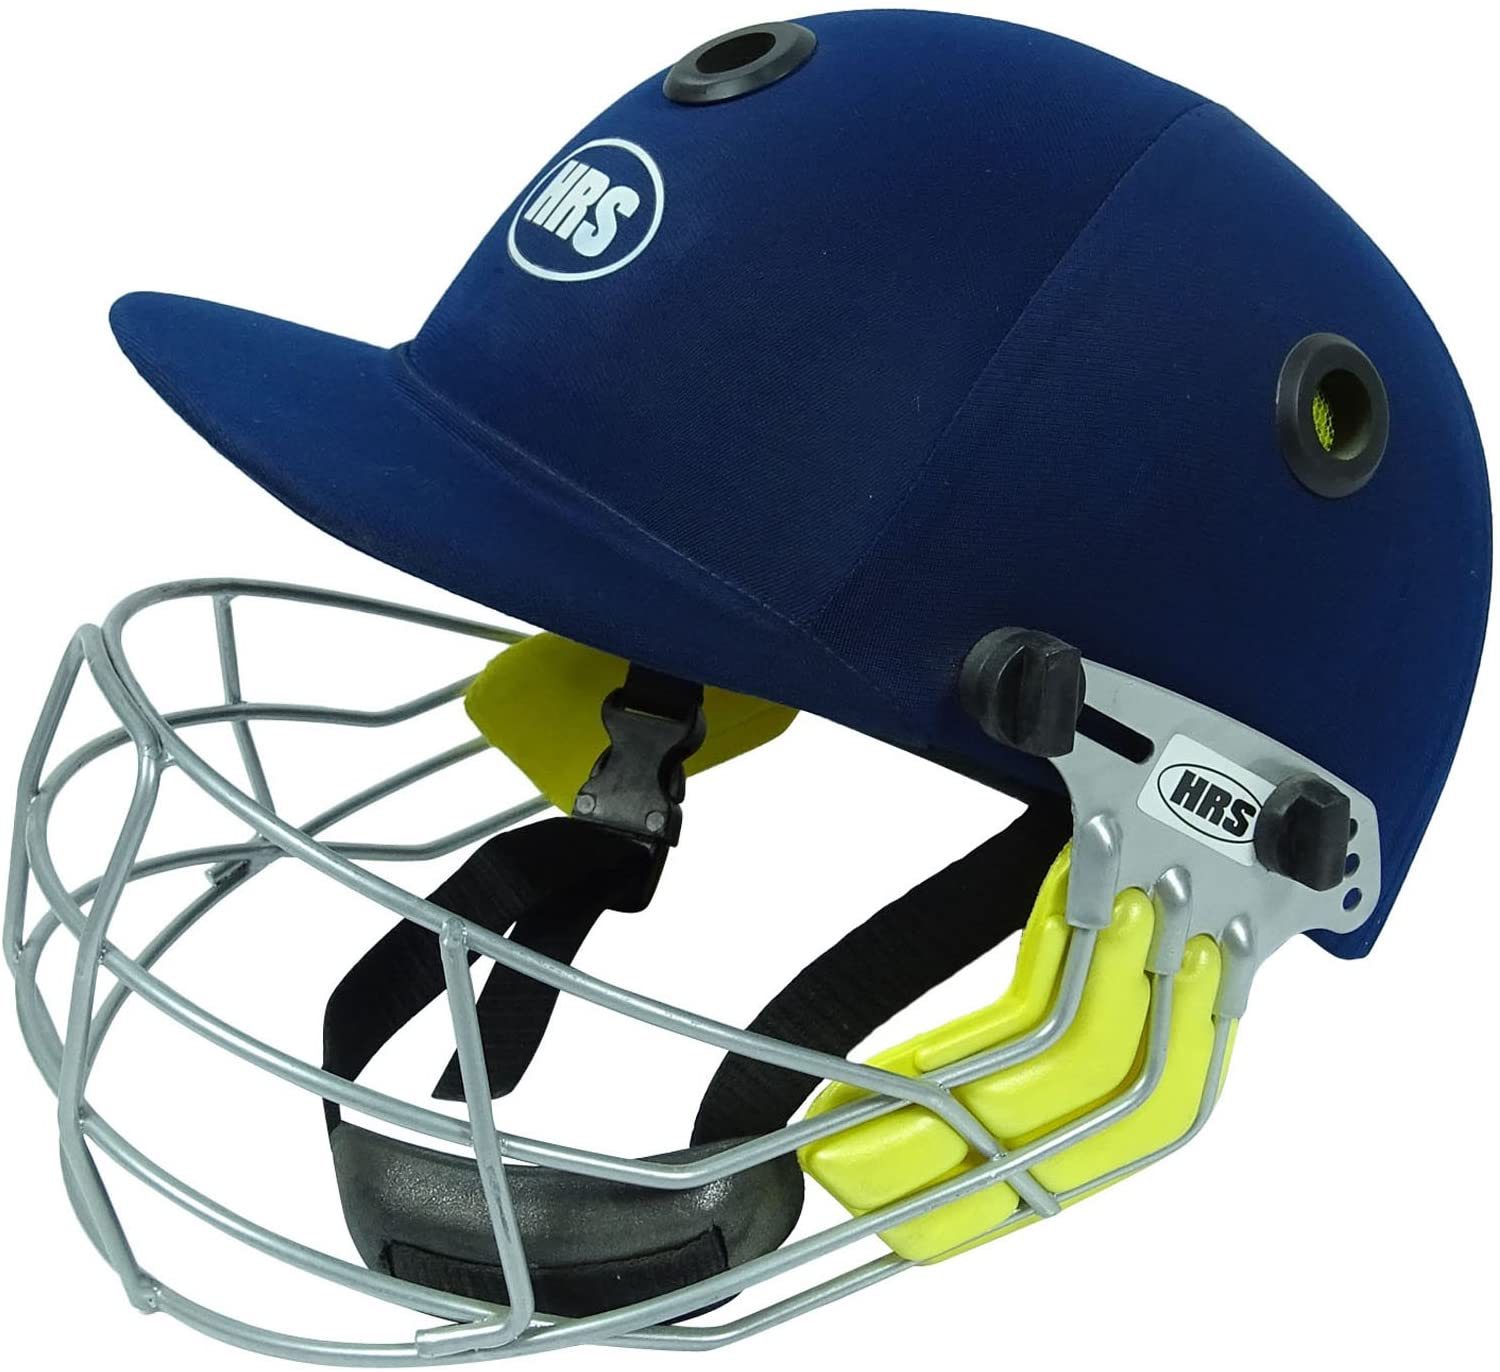 HRS Tournament Adjustable Cricket Helmet Steel Visor Head Protection Equipment